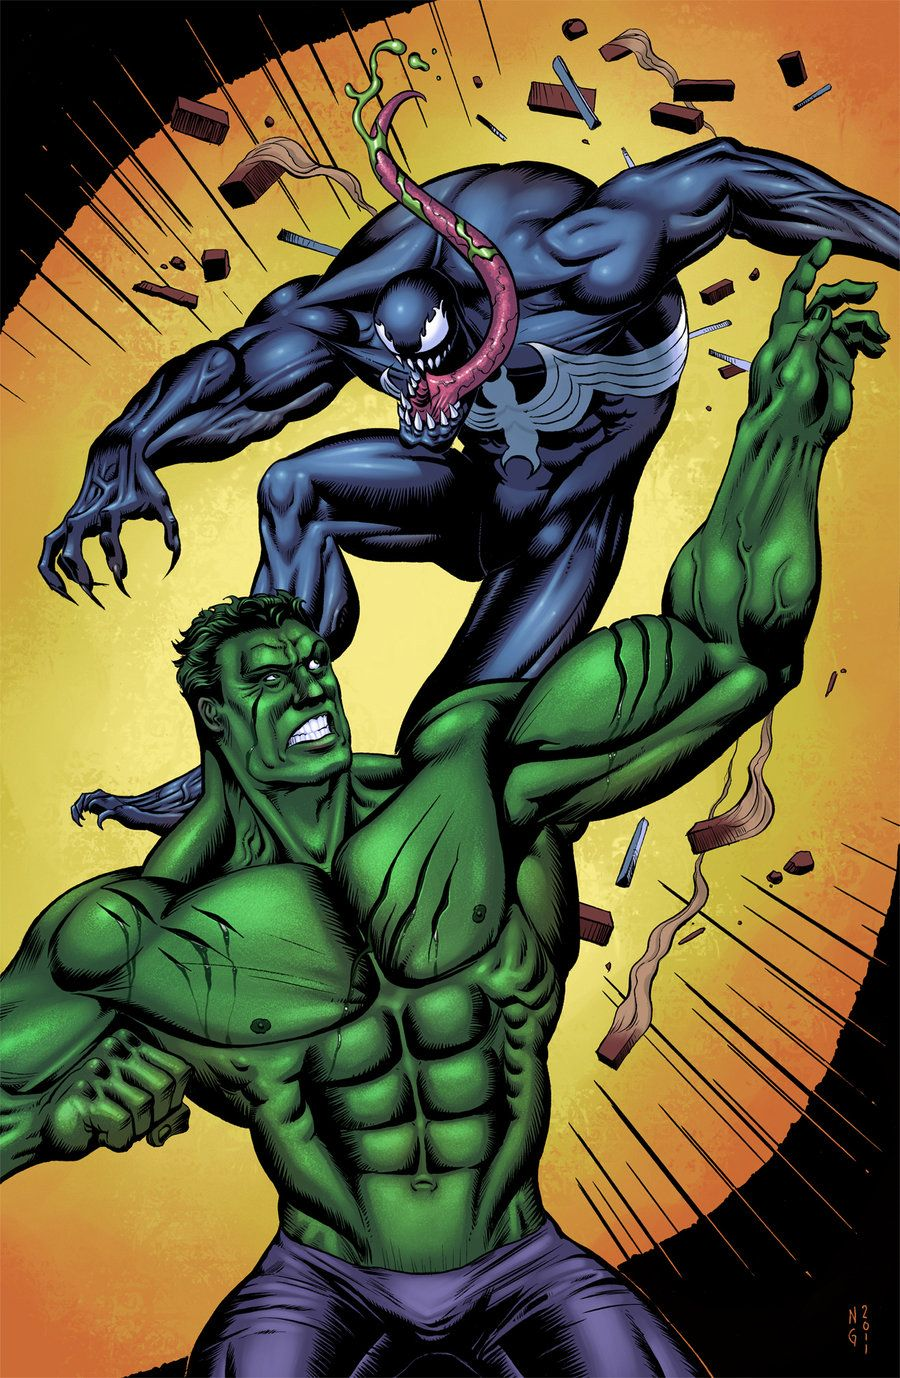 #Hulk #Fan #Art. (Venom vs Hulk) By: Electronicron. (THE * 5 * STÅR * ÅWARD * OF: * AW YEAH, IT'S MAJOR ÅWESOMENESS!!!™)[THANK Ü 4 PINNING!!!<·><]<©>ÅÅÅ+